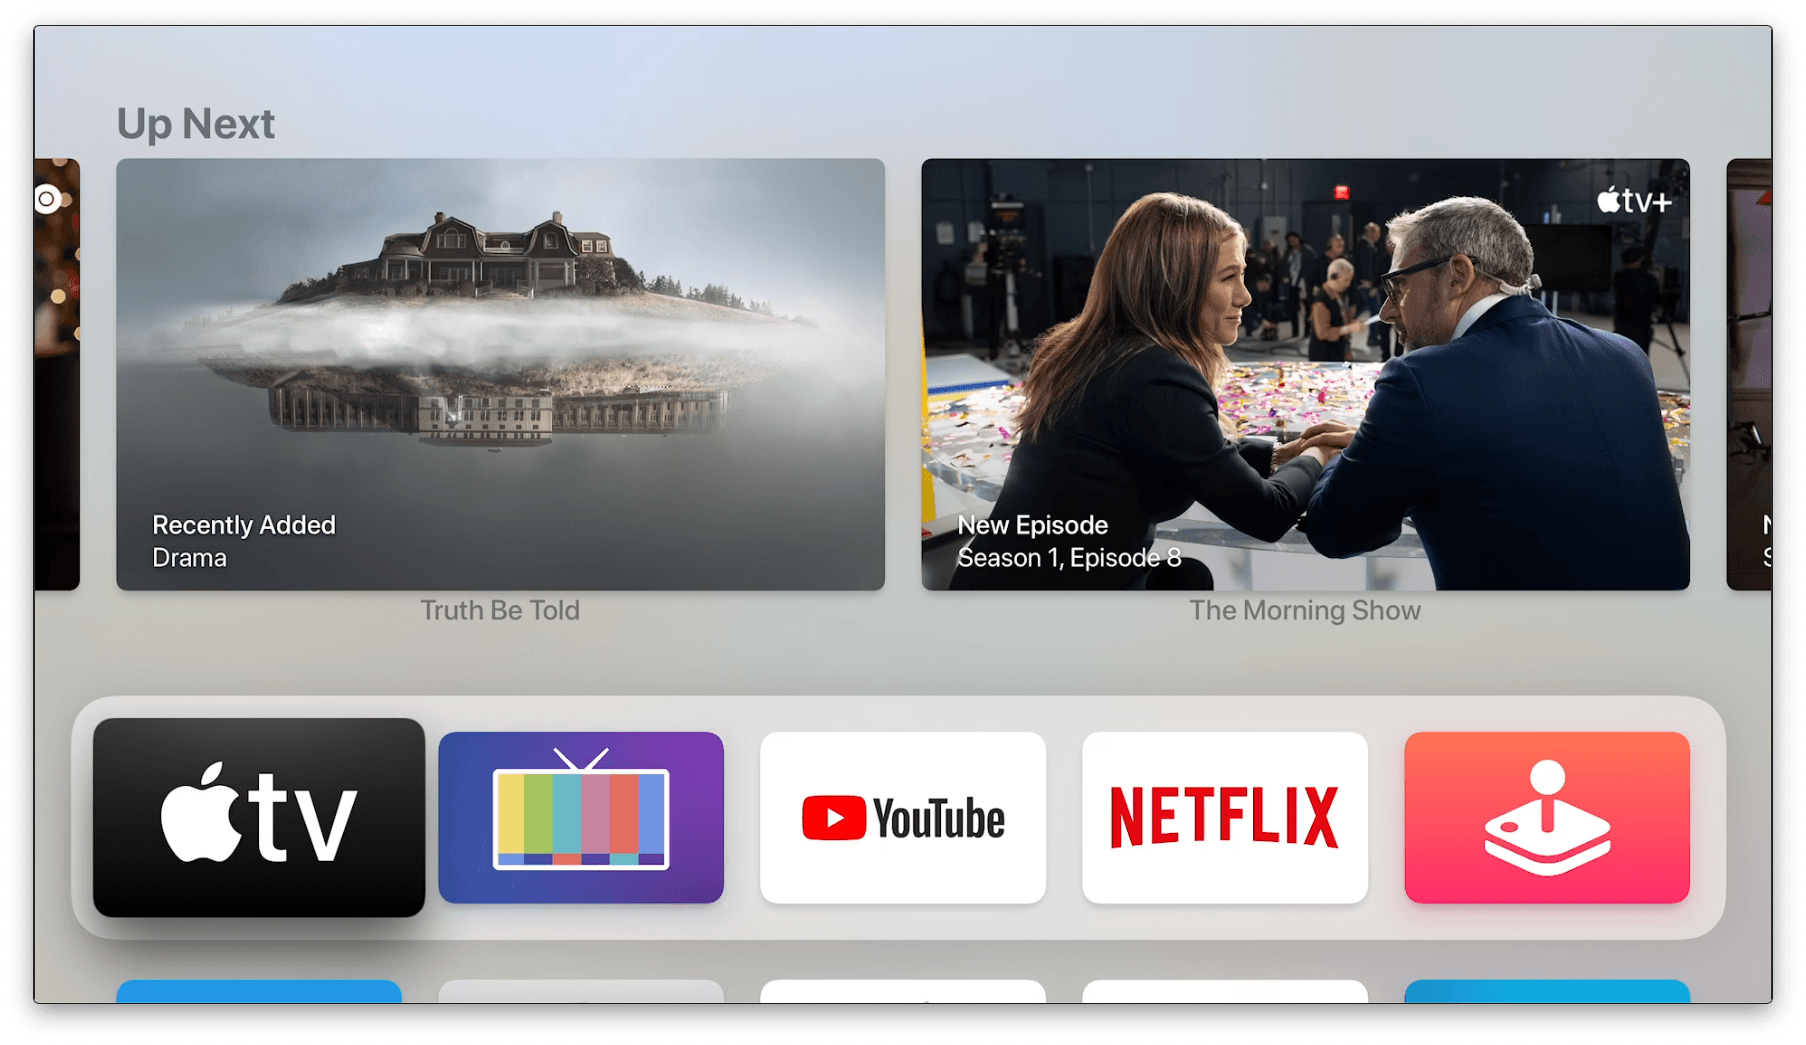 The new, old Top Shelf behavior for the TV app.